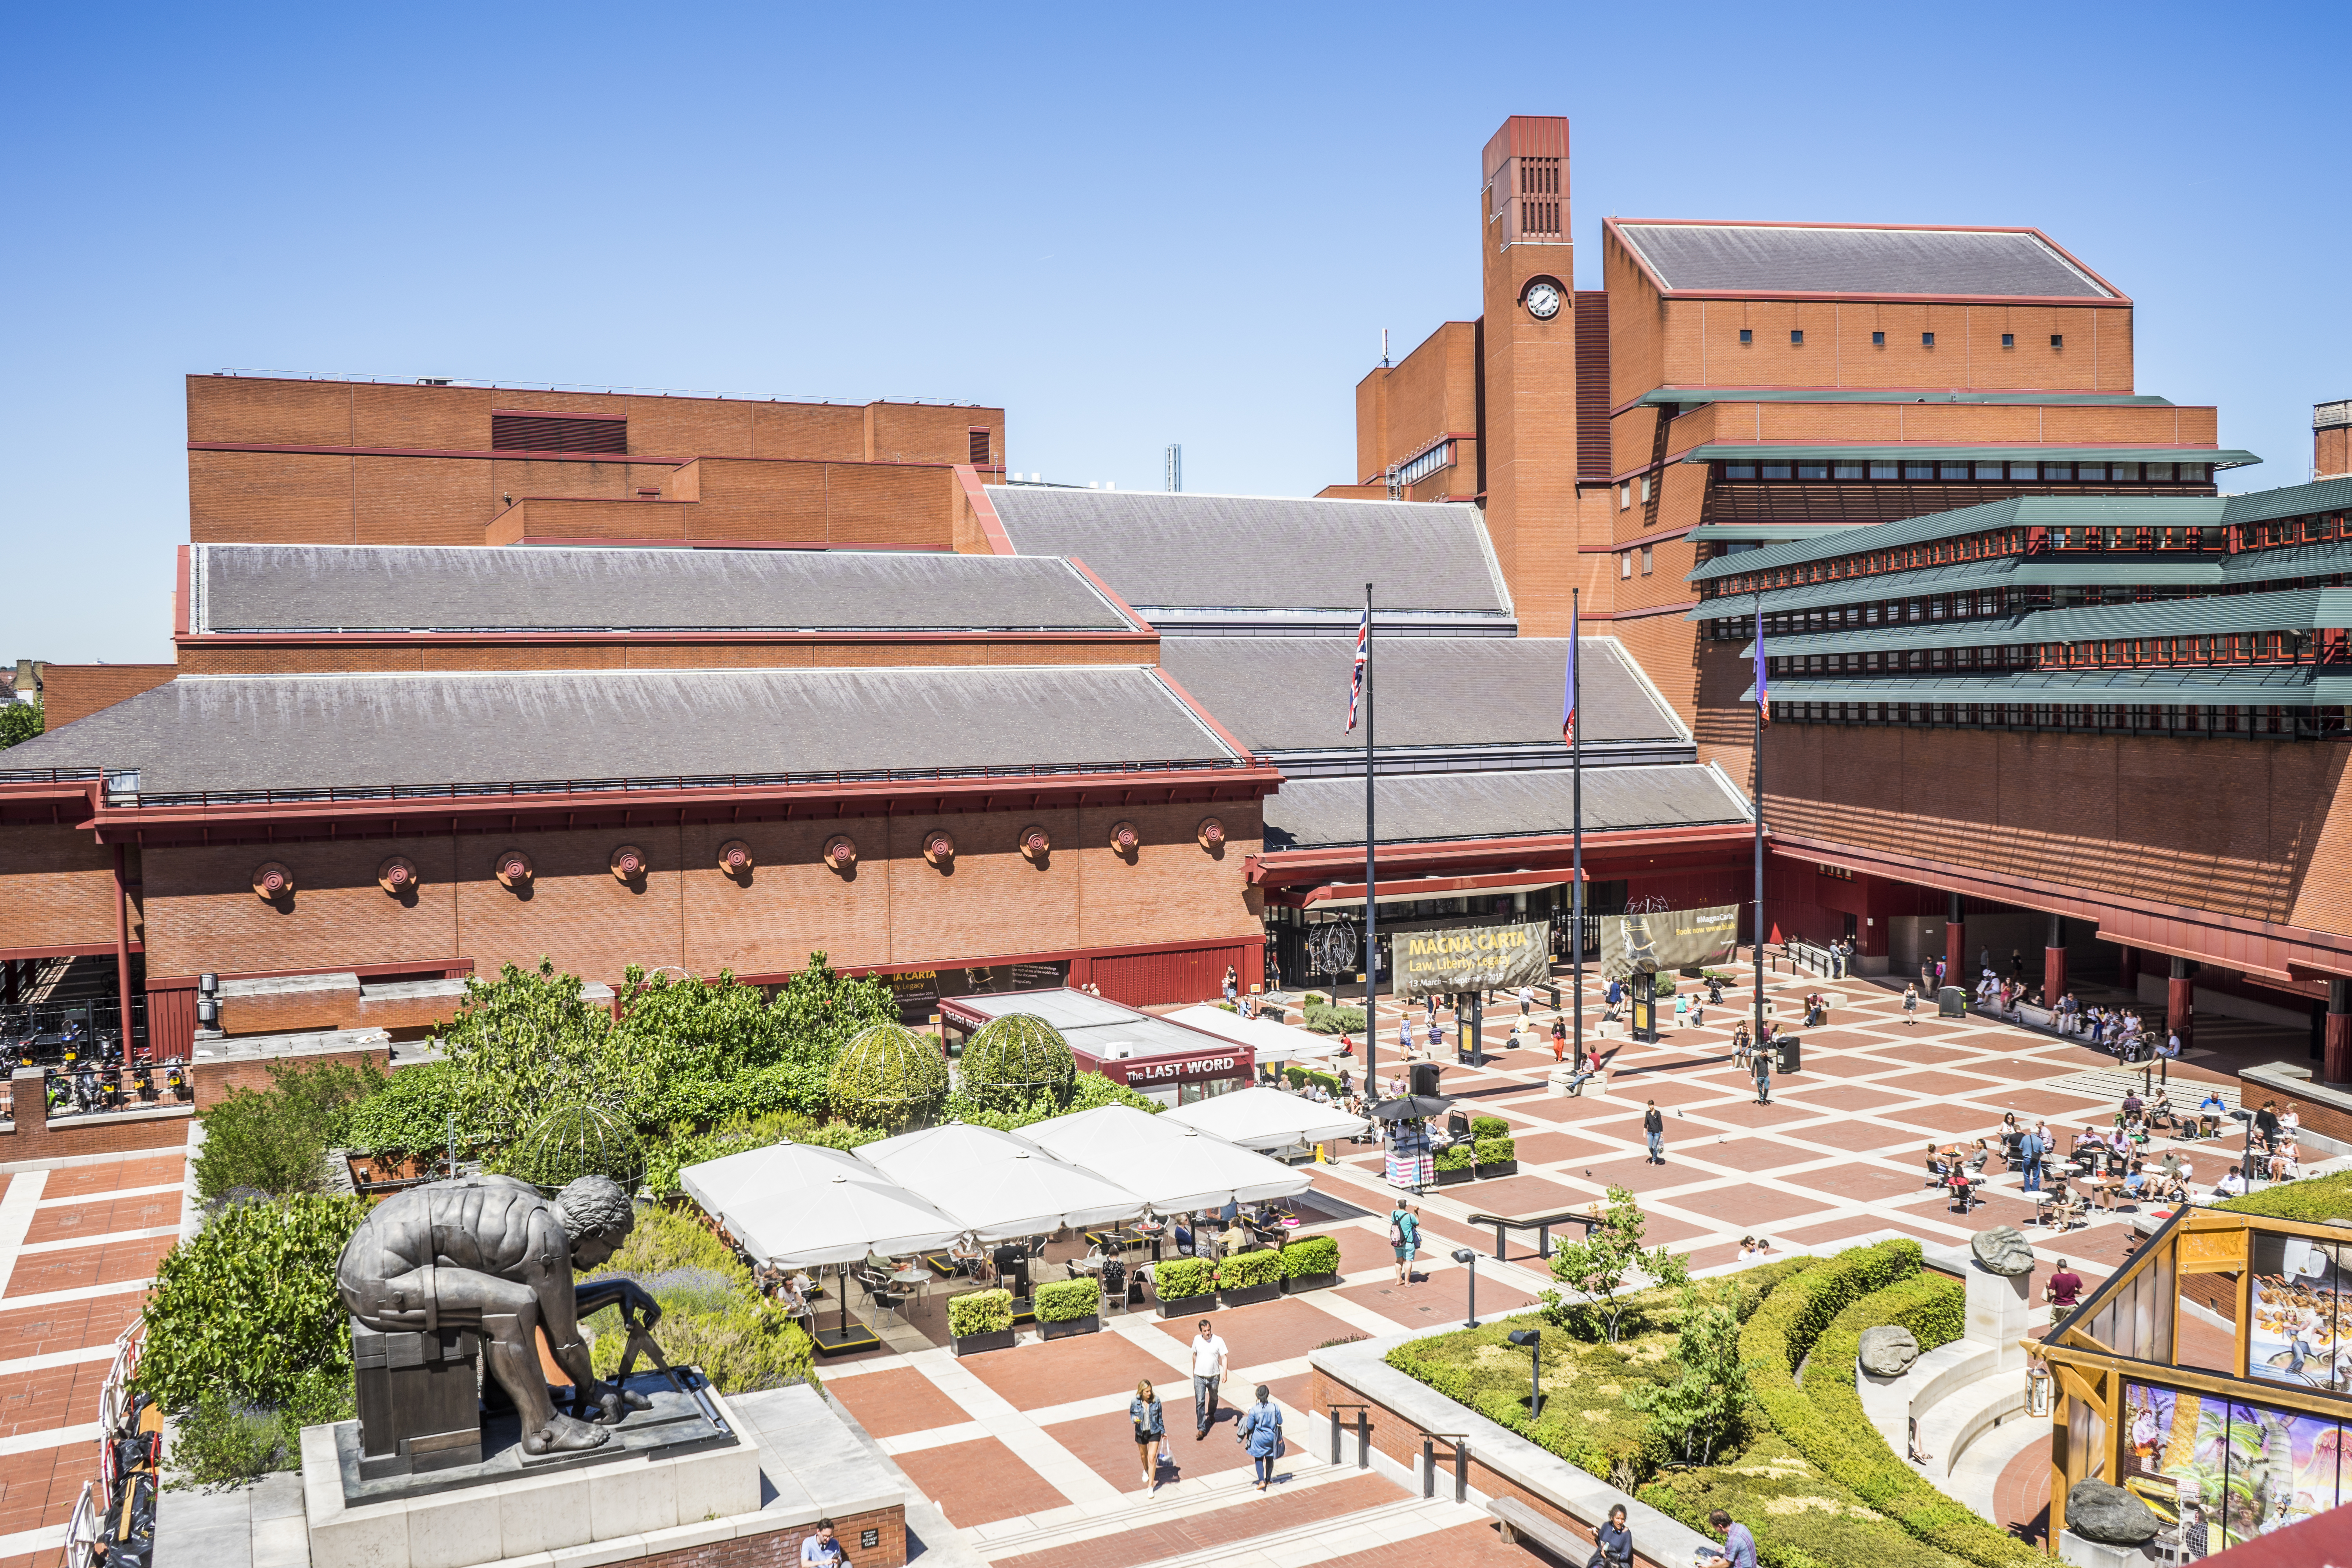 The British Library building